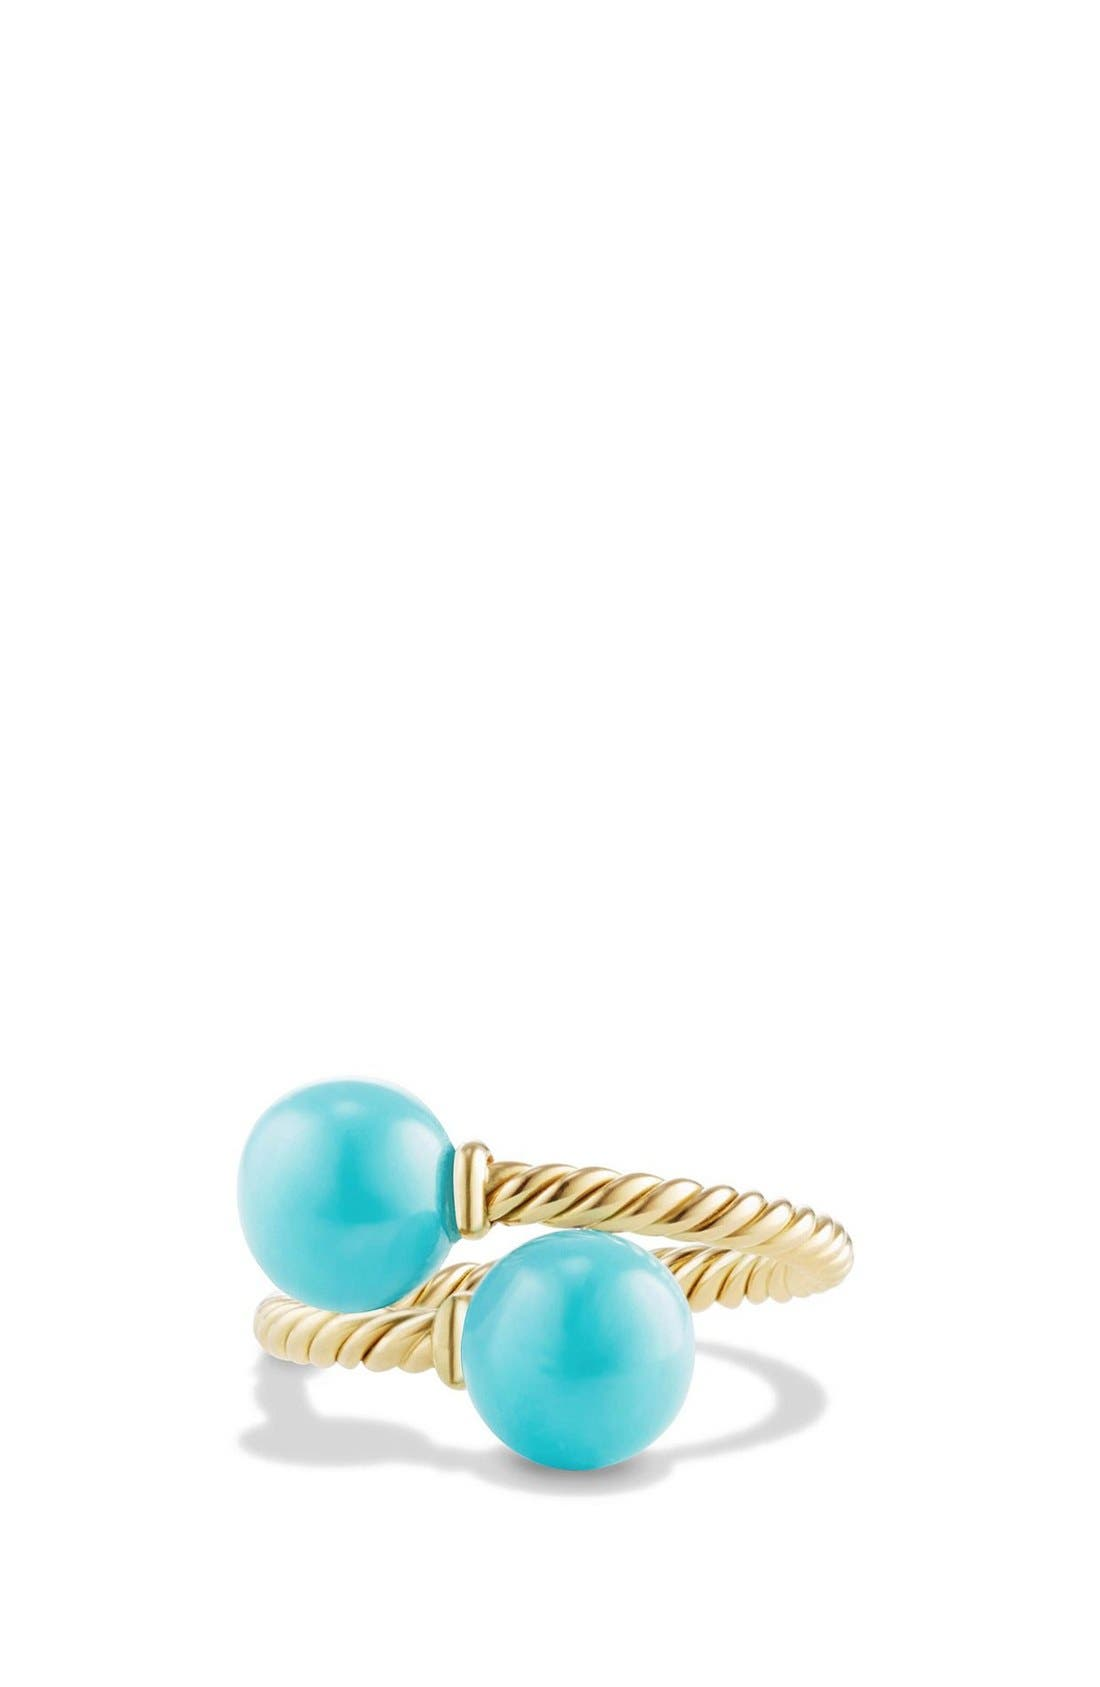 Alternate Image 1 Selected - David Yurman 'Solari' Bead Ring with Turquoise in 18K Gold